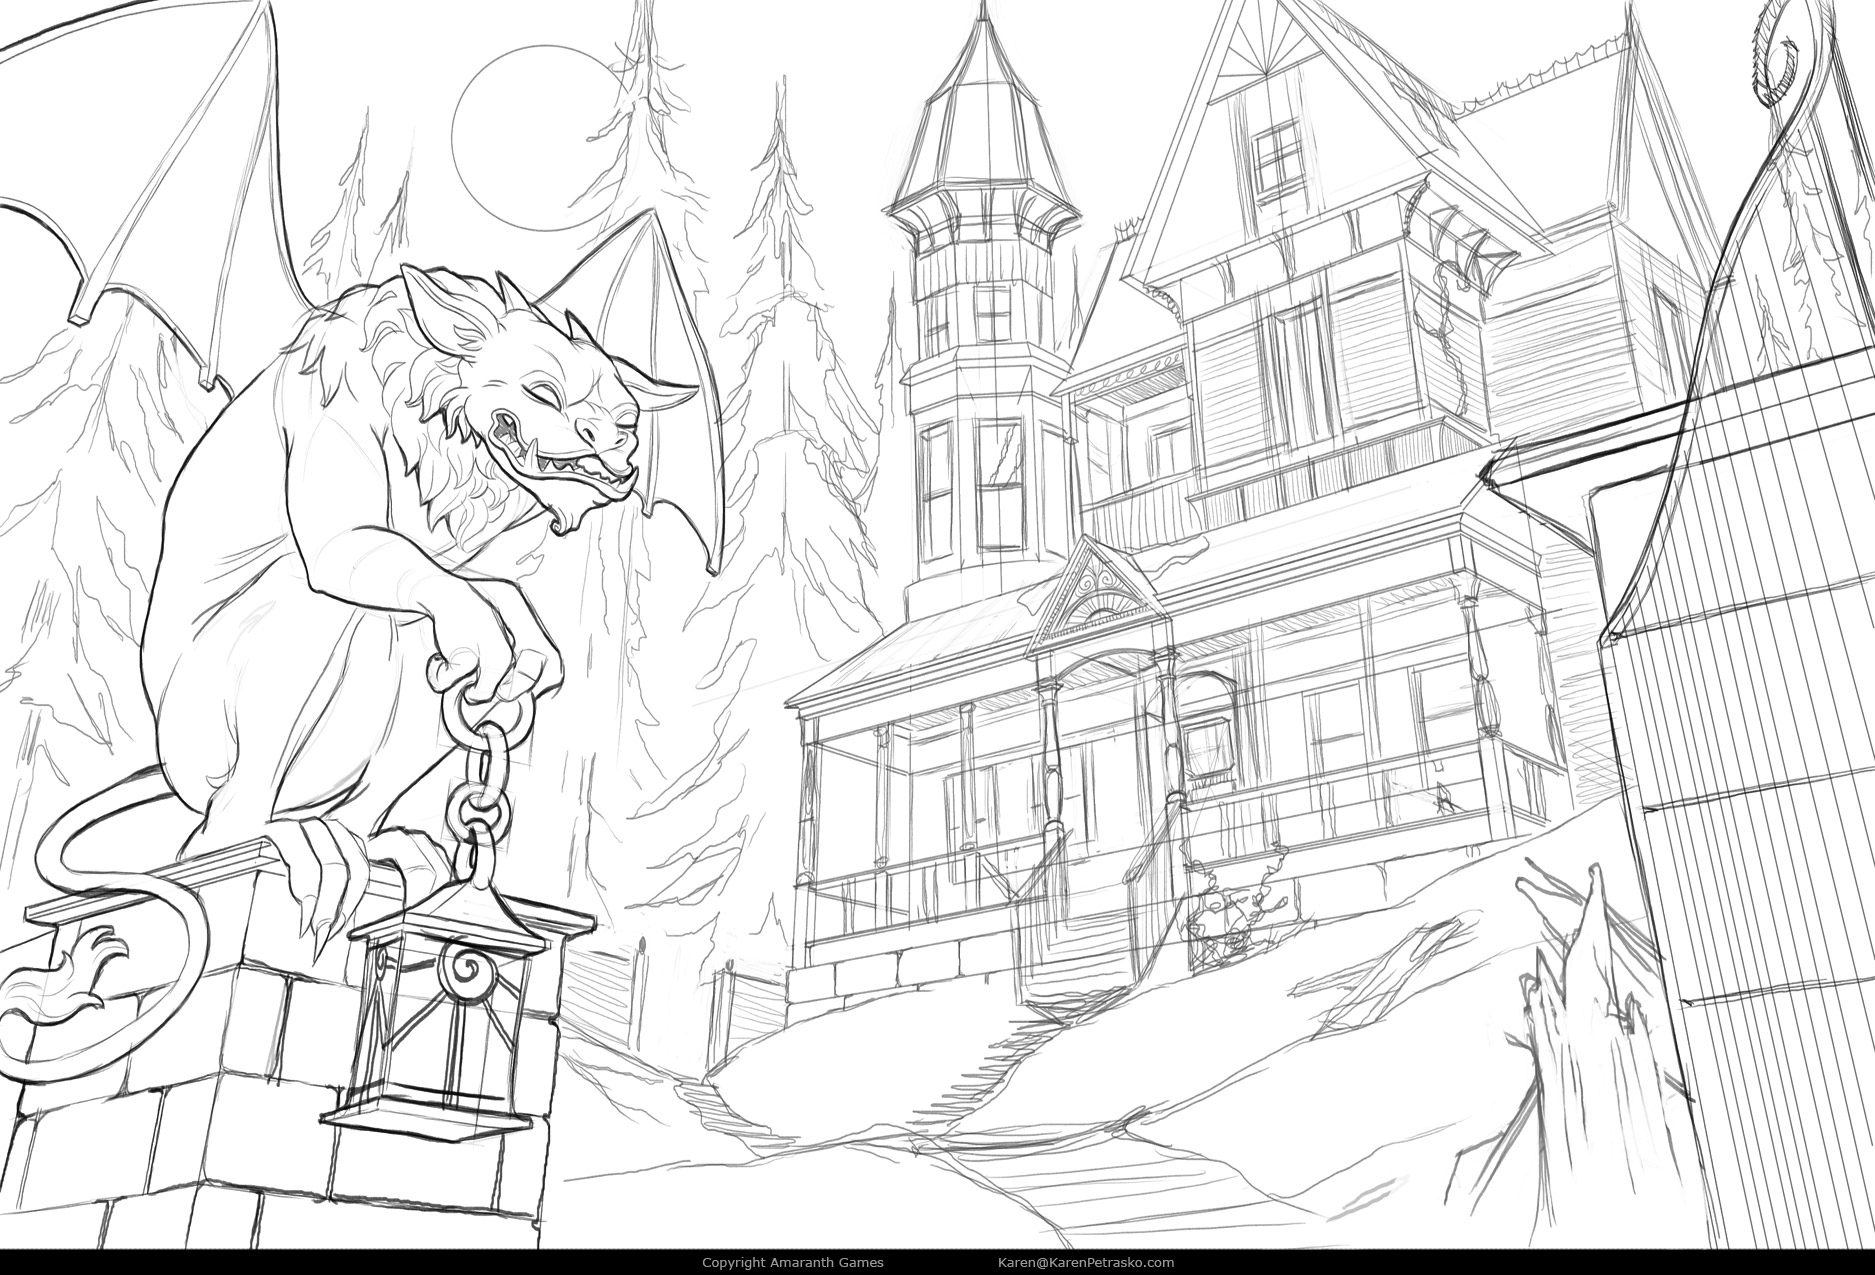 Front yard manor sketch for Curse at Twilight: Thief of Souls